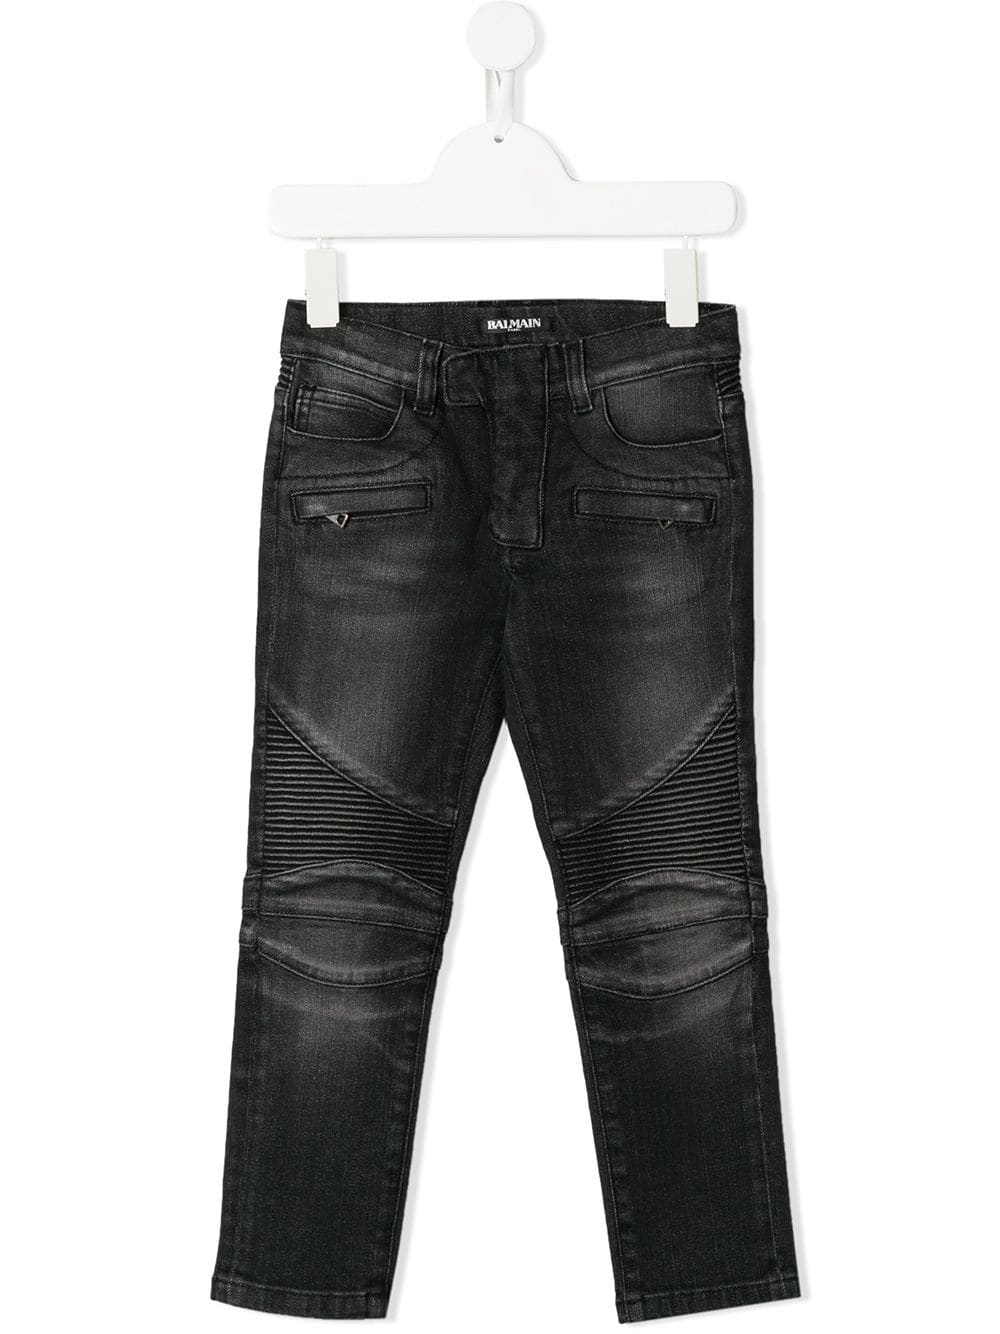 Balmain Kids slim-fit biker jeans washed black - Maison De Fashion